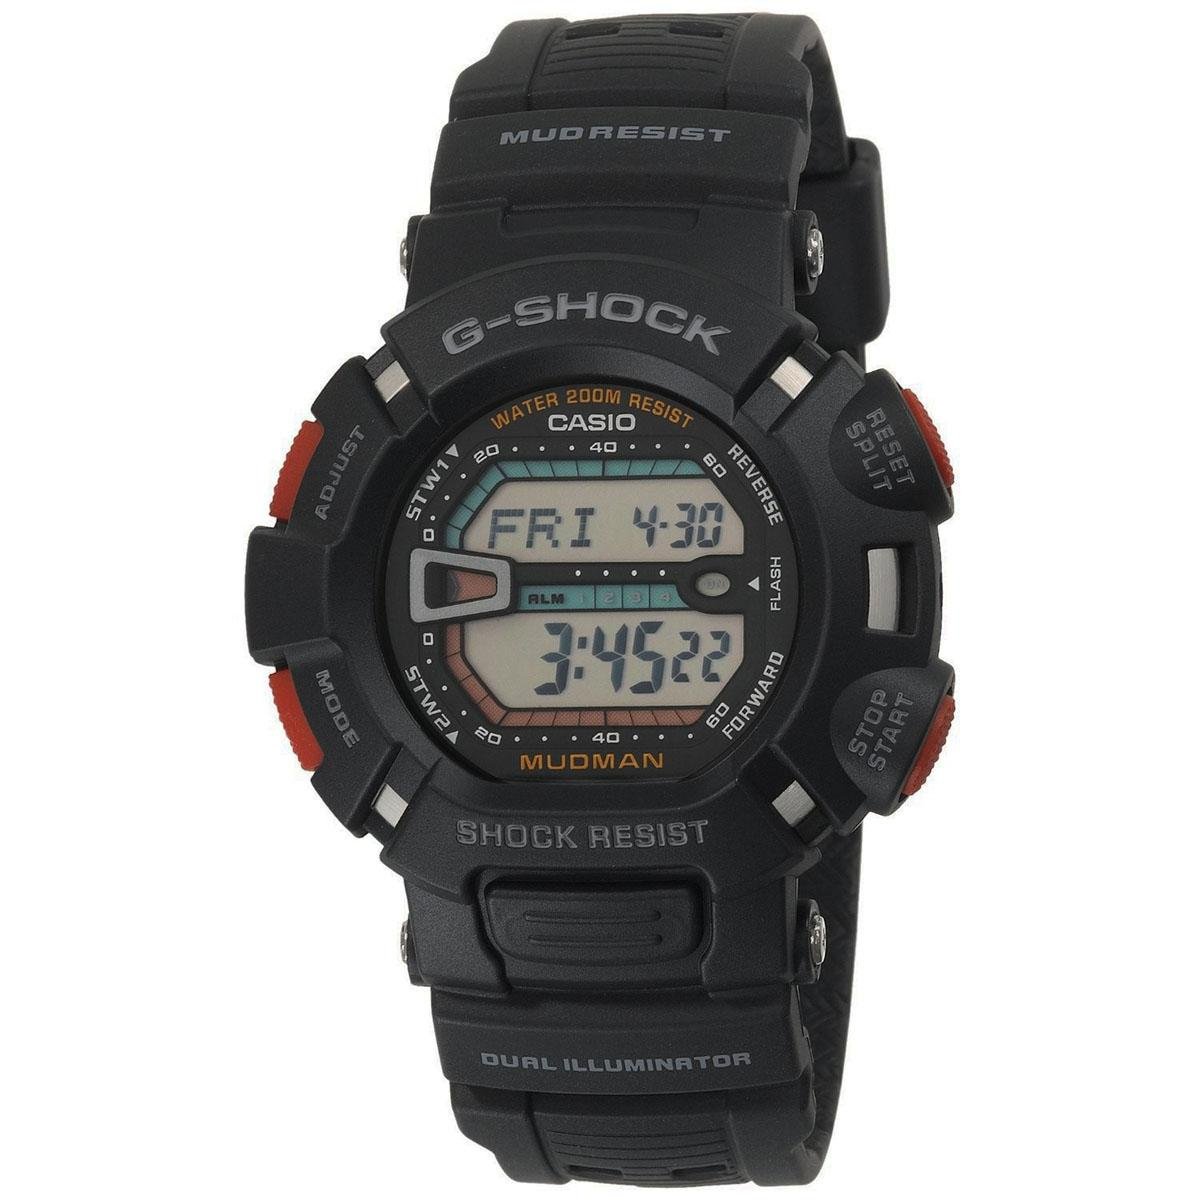 Casio Watch G Shock Professional Black Resin Case Resin Strap Mens G 9000 1V On Line